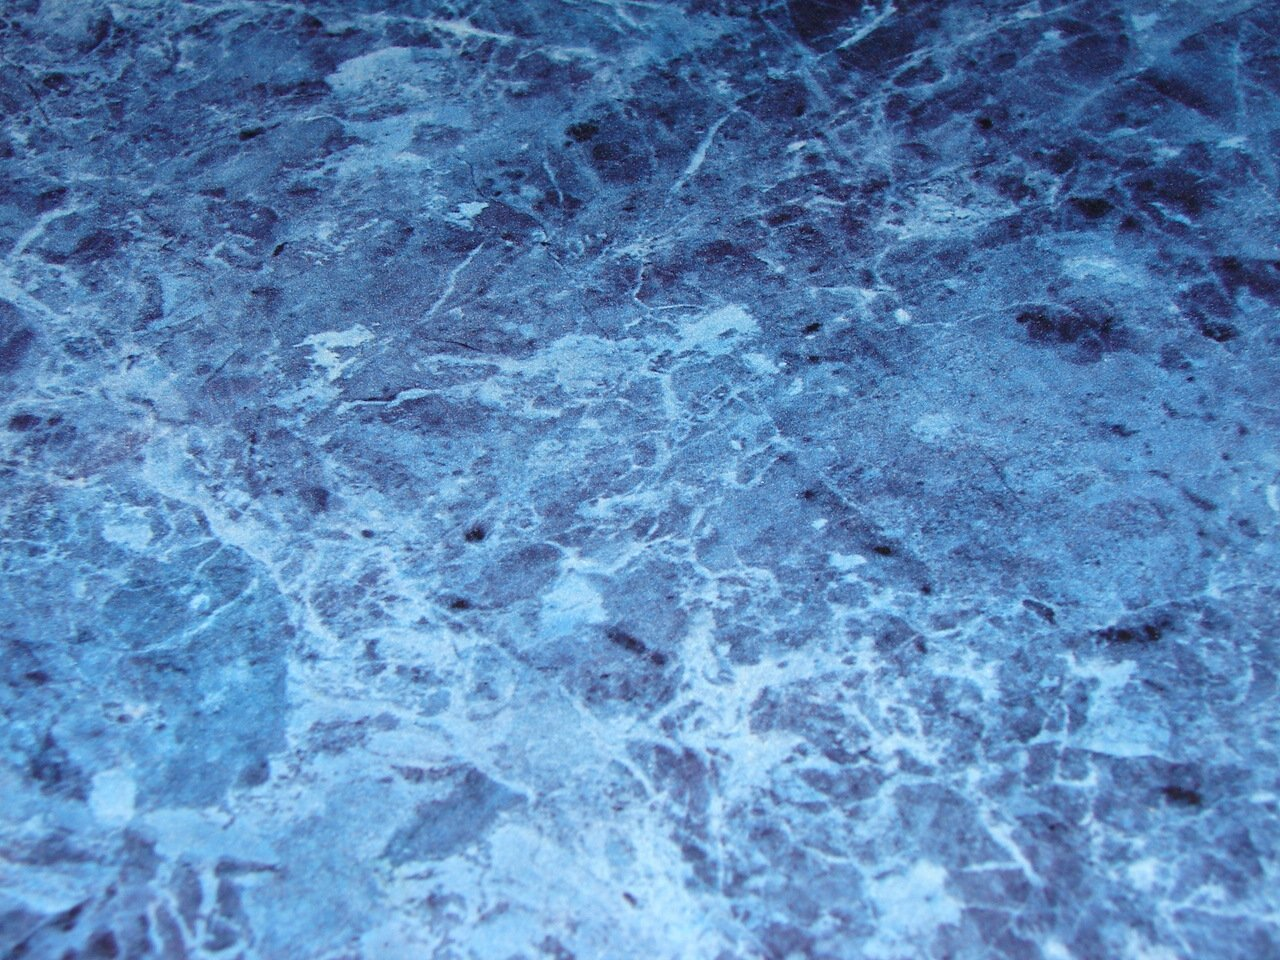 Free Download Texture Blue Marble Texture Background Download Photo Blue Marble 1280x960 For Your Desktop Mobile Tablet Explore 40 Blue Marble Wallpaper White And Black Marble Wallpaper Faux Marble